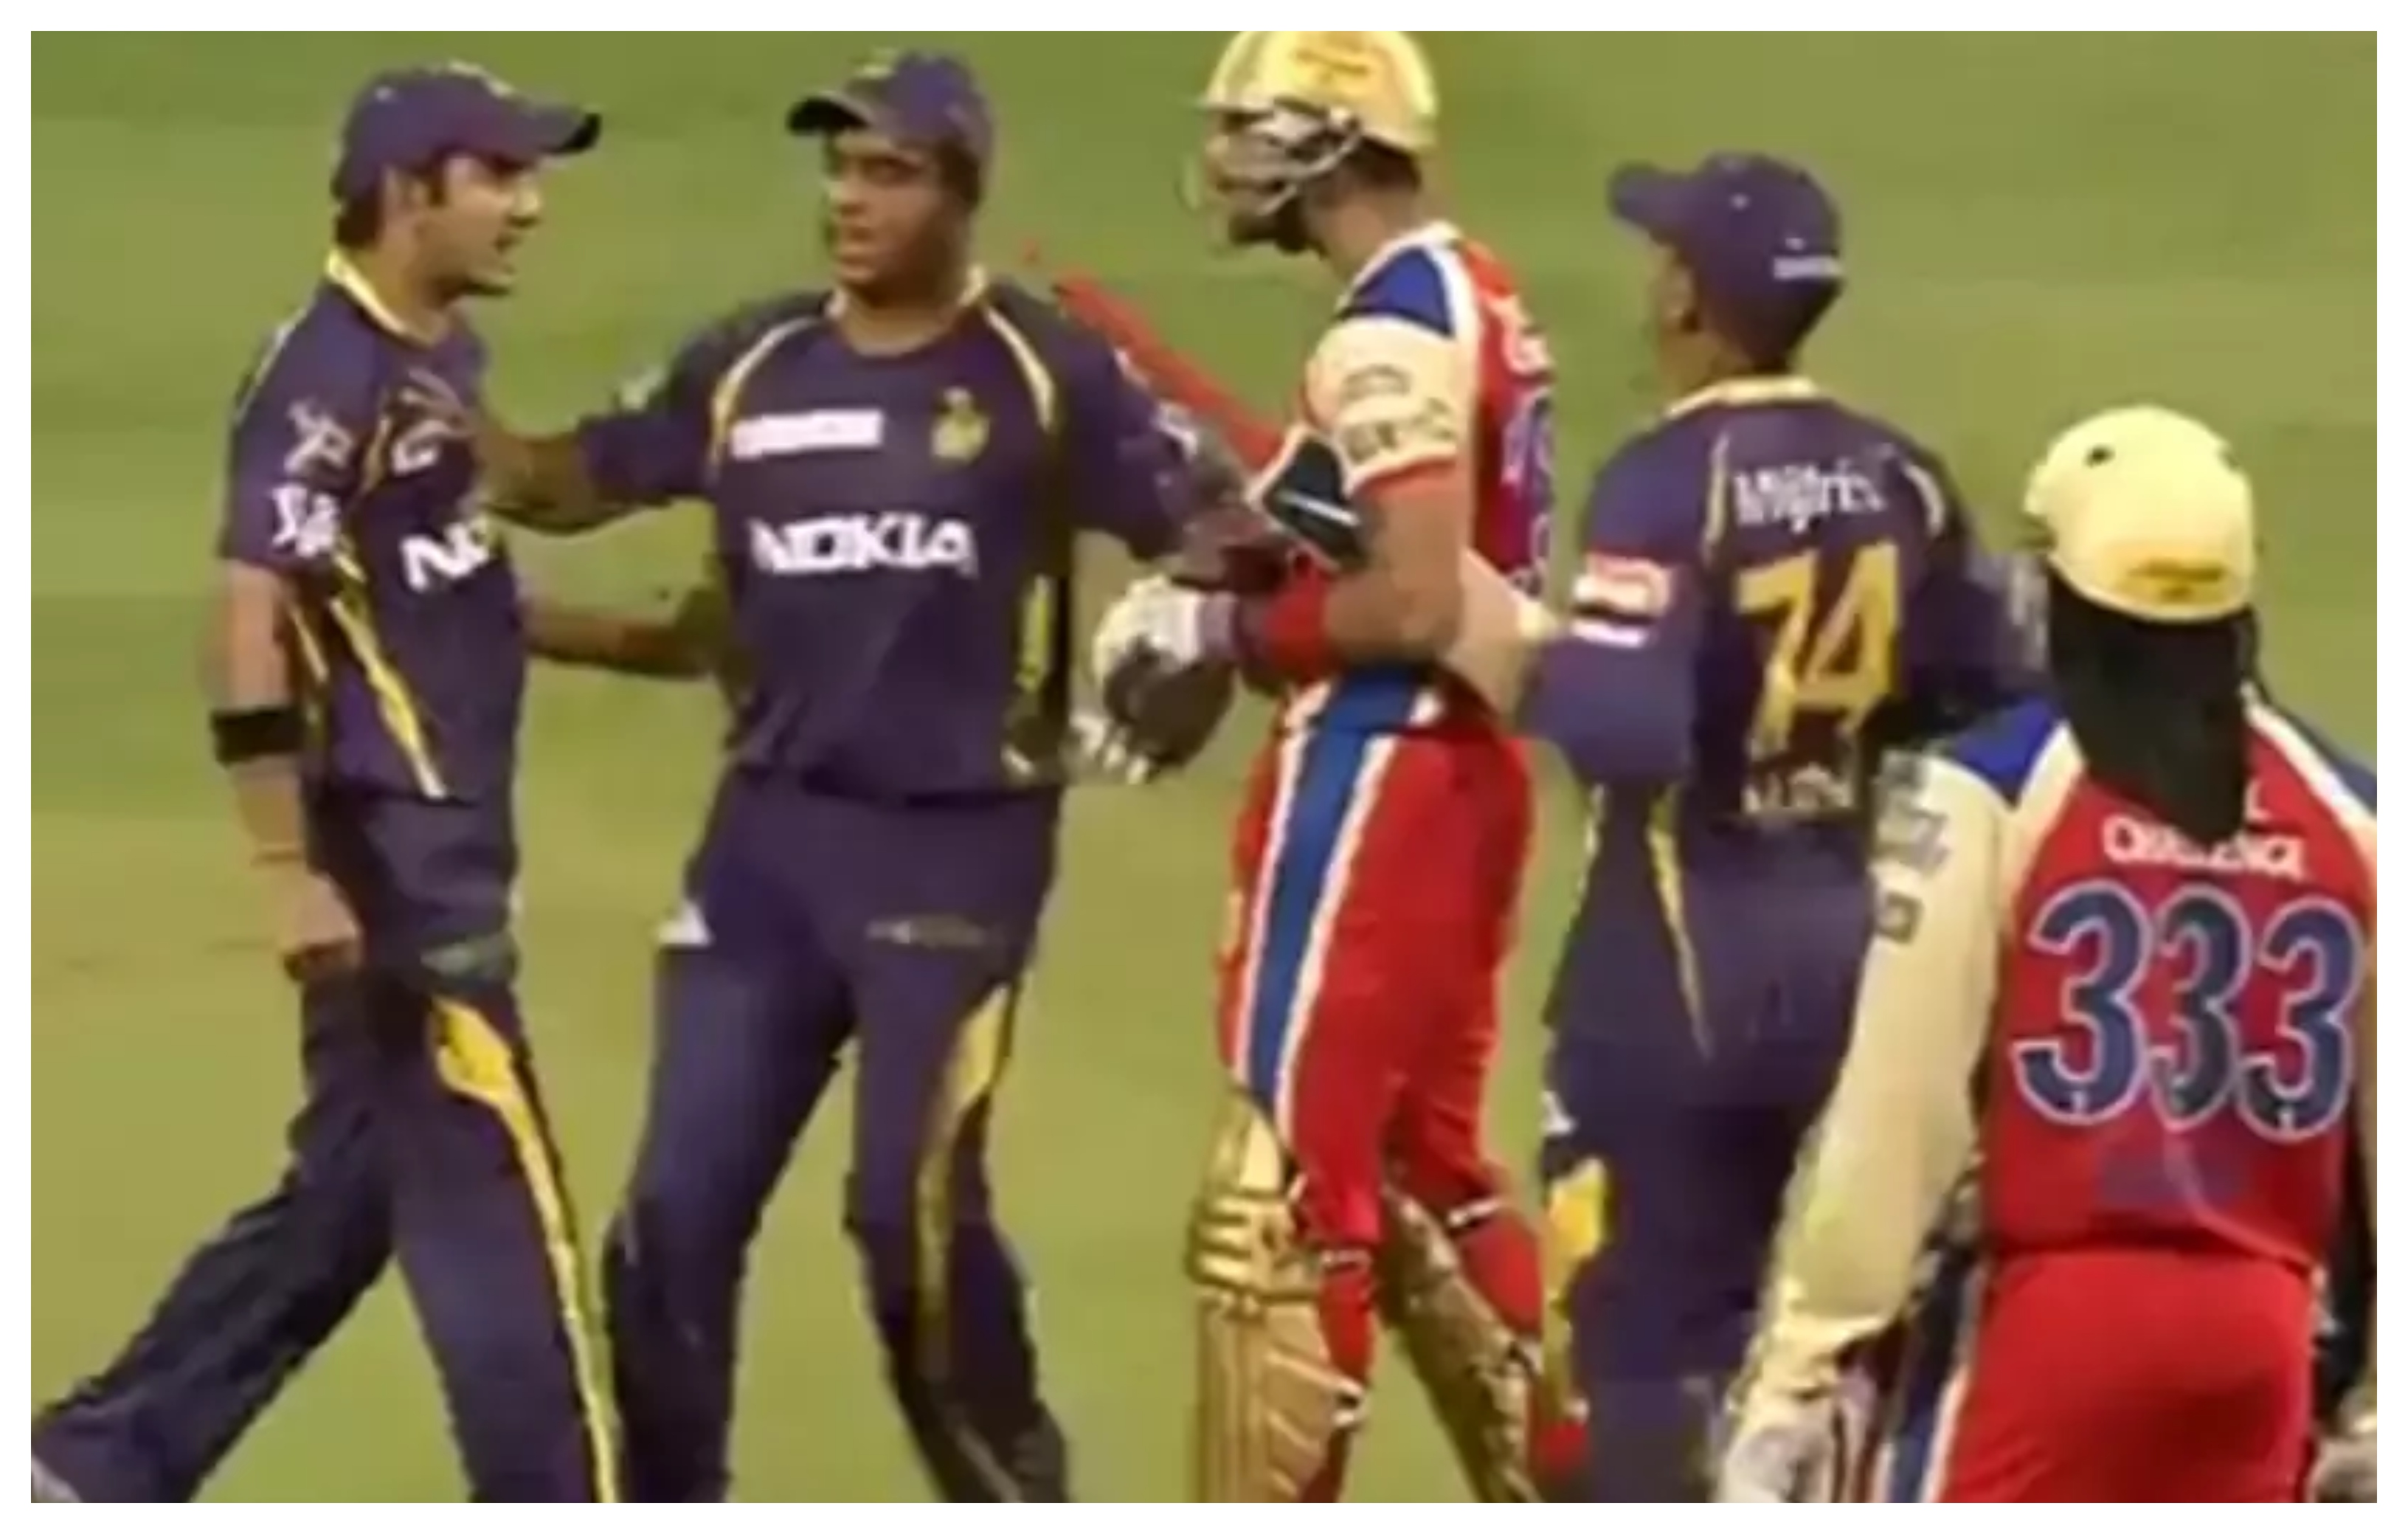 Gautam Gambhir and Virat Kohli involved in an on-field altercation during IPL 2013 | Screengrab